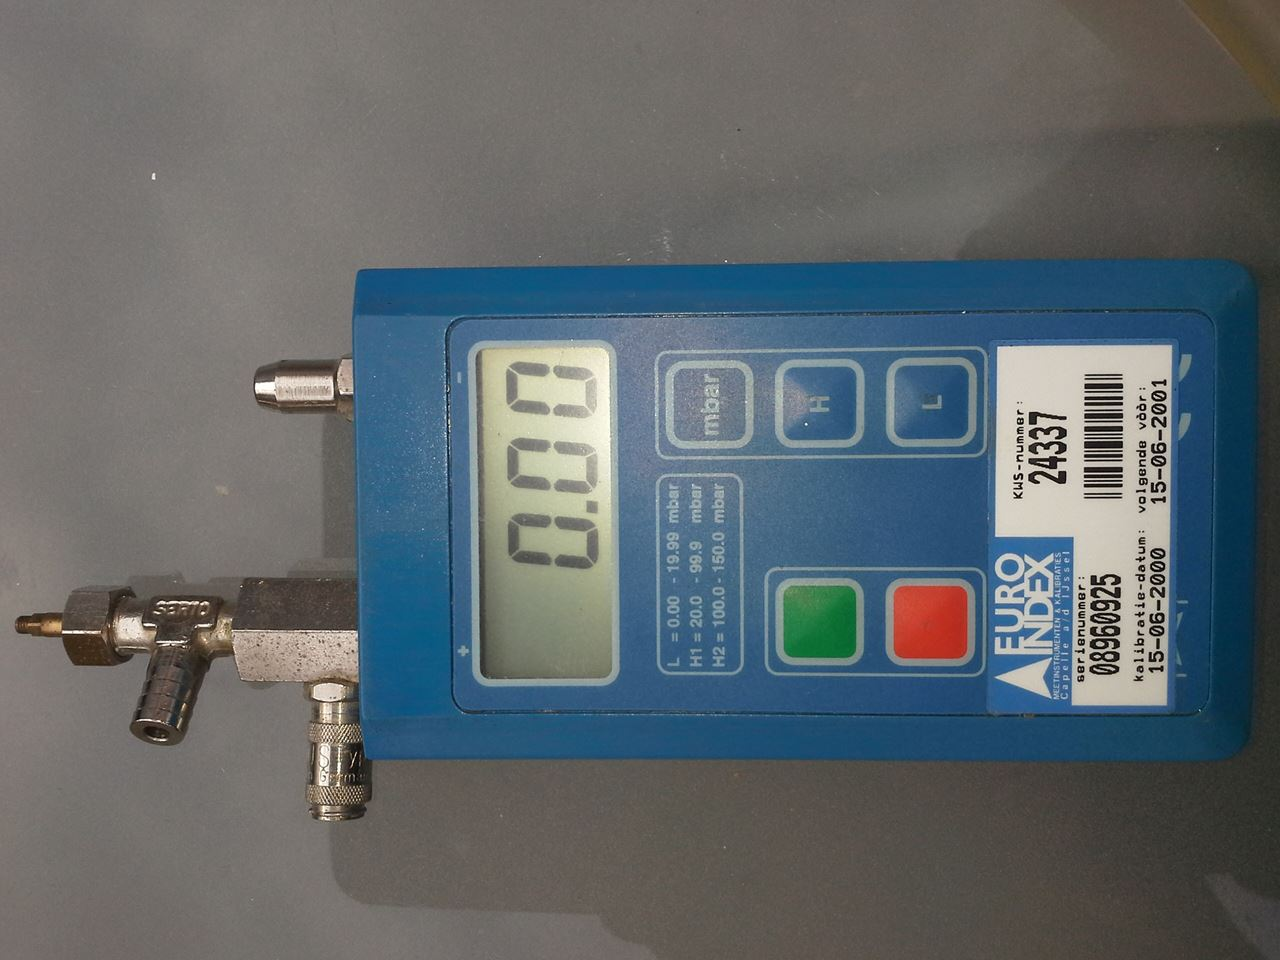 Euro index s2401 015a drukmeter 0 150mbar voor 89 00 incl for Ohrensessel 150 euro